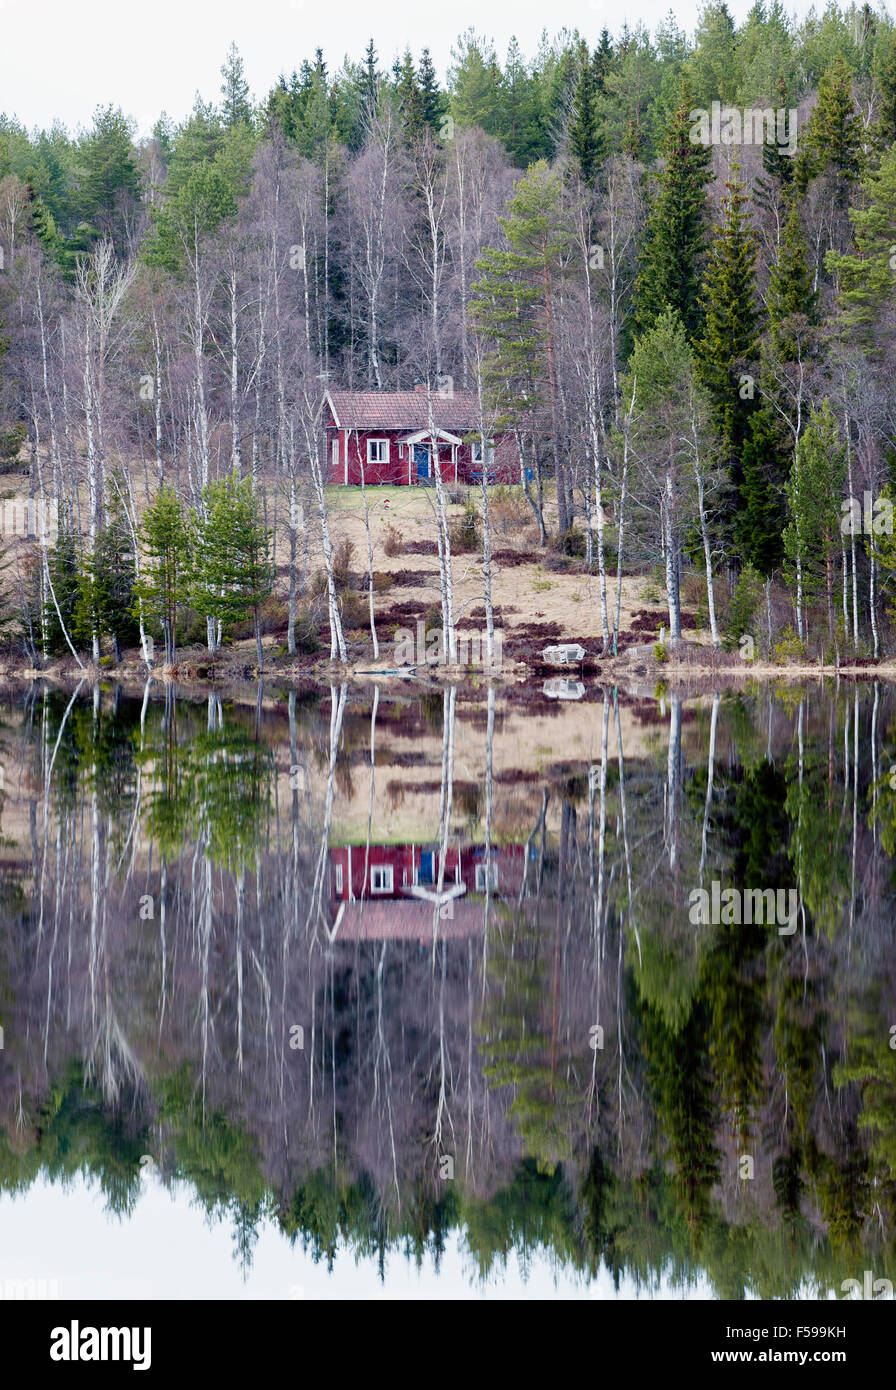 Croft by the lake, Sweden Stock Photo